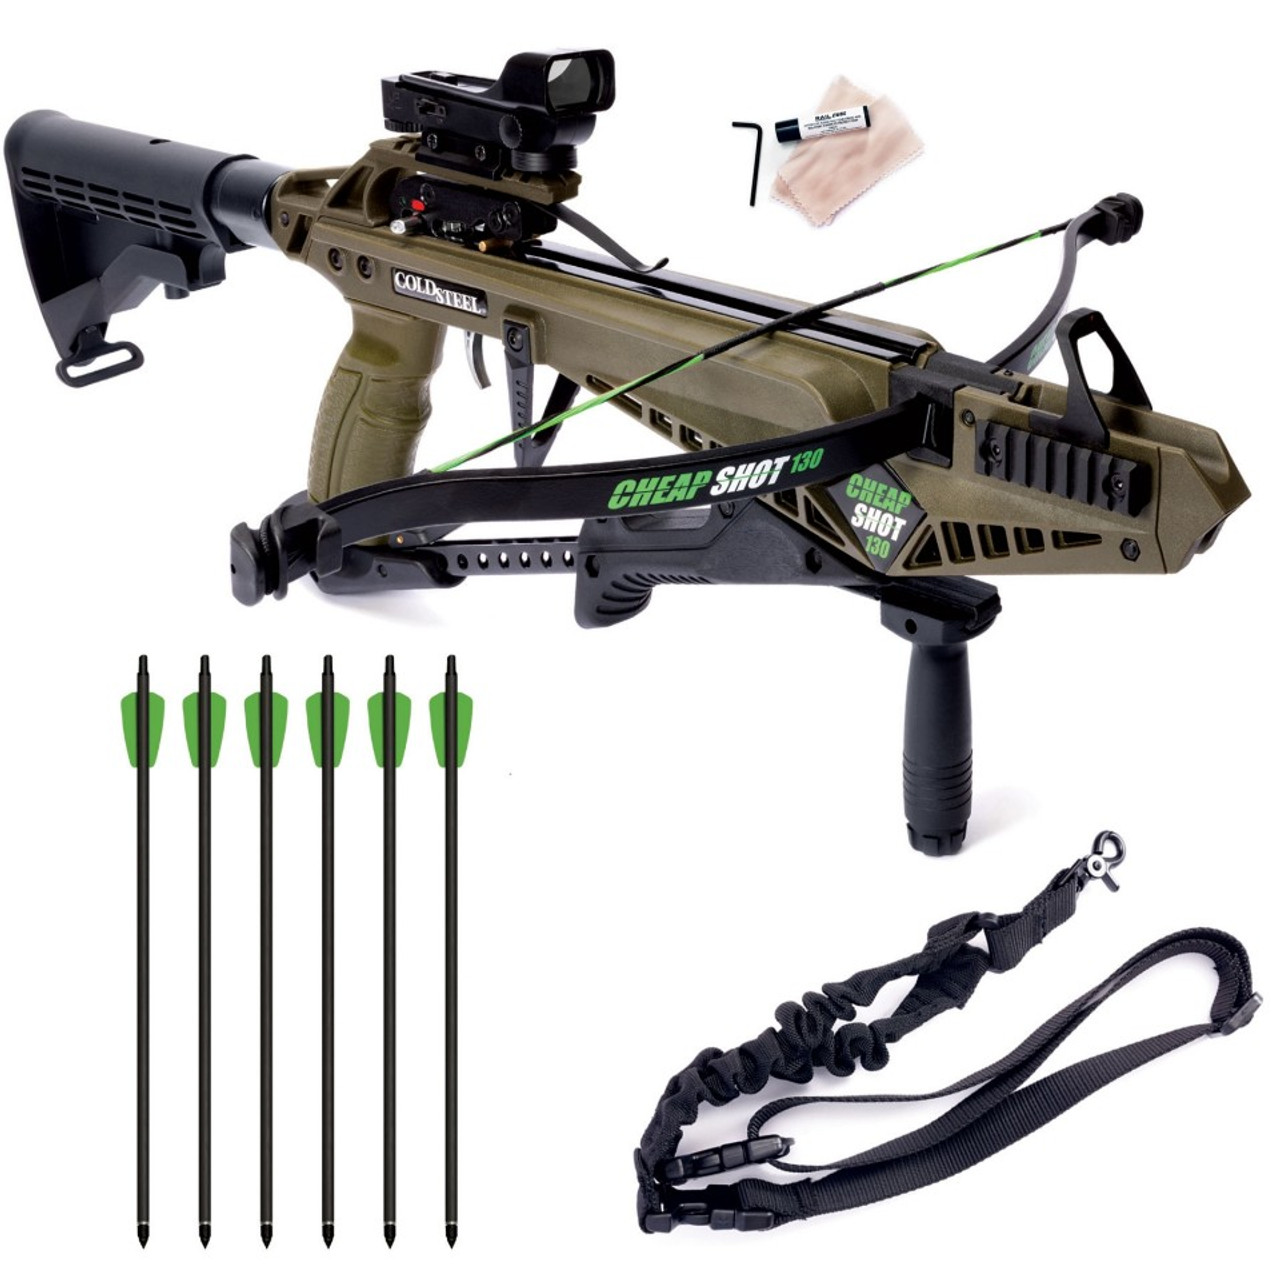 Cold Steel CS13 Cheap Shot 130 Crossbow - 130lb Draw Weight - Includes 6  Carbon Bolts & Accessories